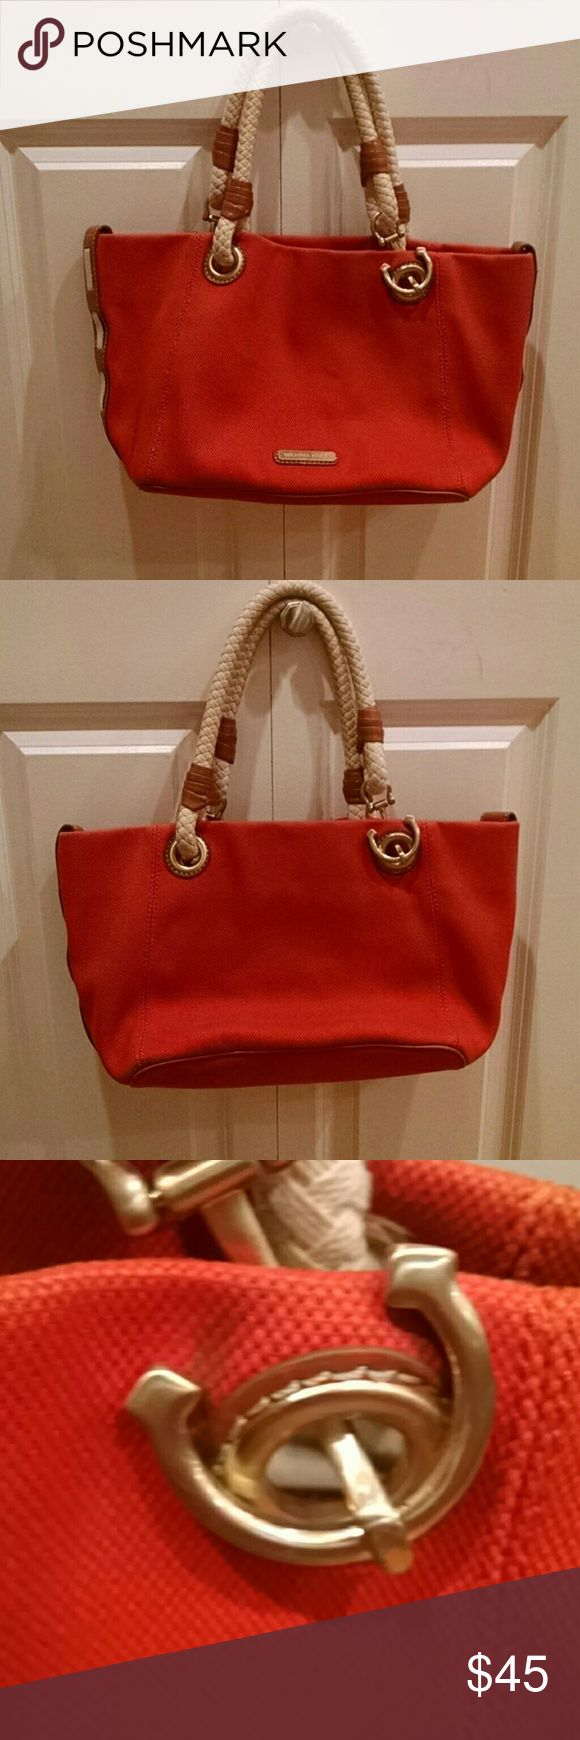 Michael kors orange nautical bag Beautiful bag!!!! Only one spot by the anchor in the front otherwise outside no other marks. Pink highlighter marks on inside. Great summer bag!!! Michael Kors Bags Totes